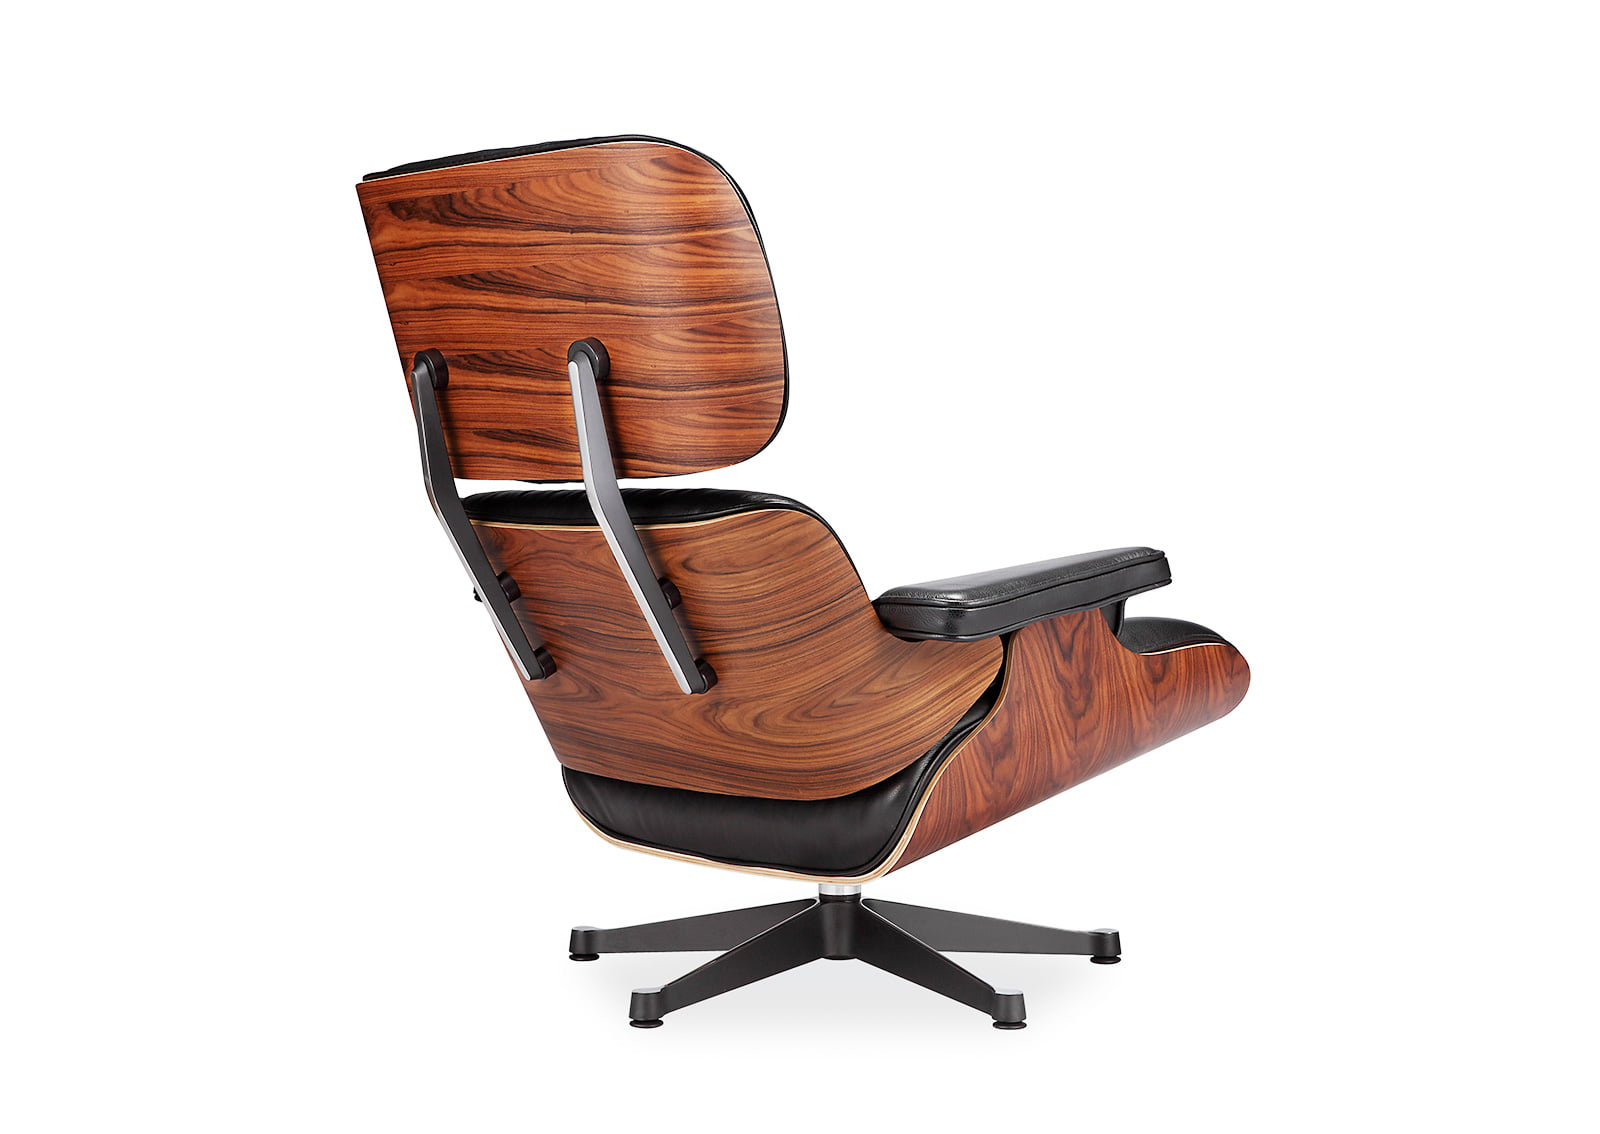 Incredible Eames Chairs Eames Lounge Chair With Ottoman Furnishplus Creativecarmelina Interior Chair Design Creativecarmelinacom